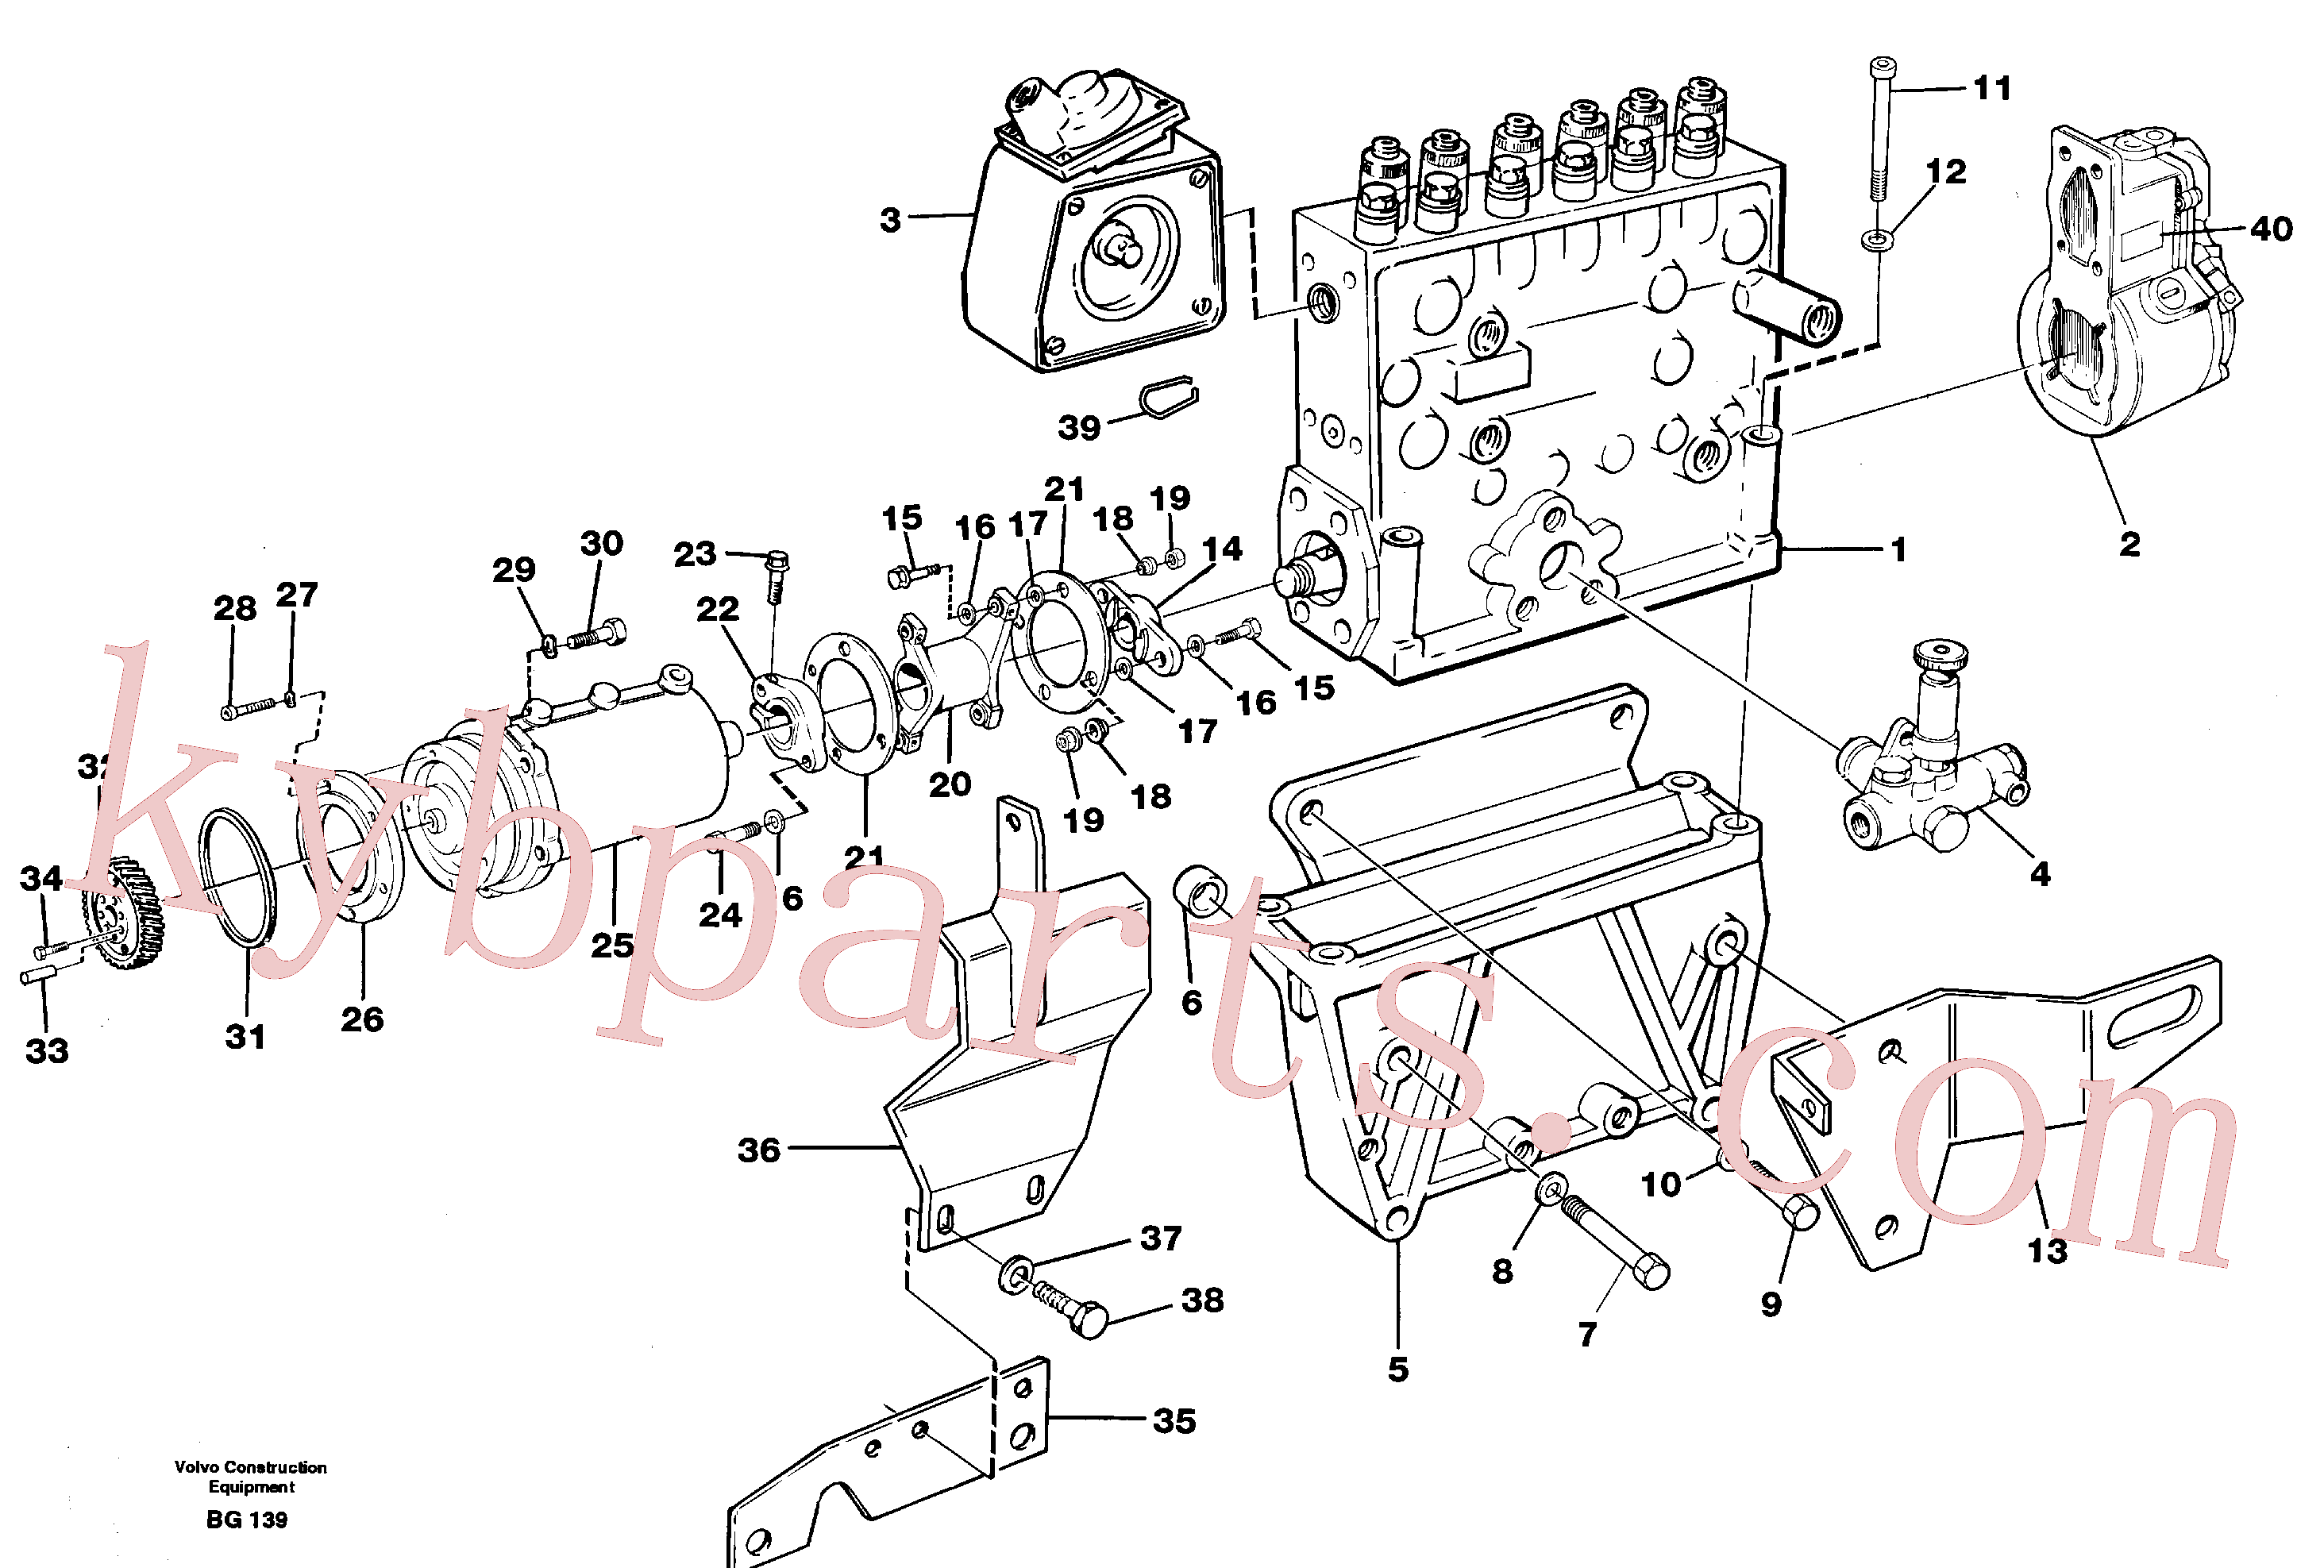 VOE479696 for Volvo Fuel injection pump with fitting parts(BG139 assembly)